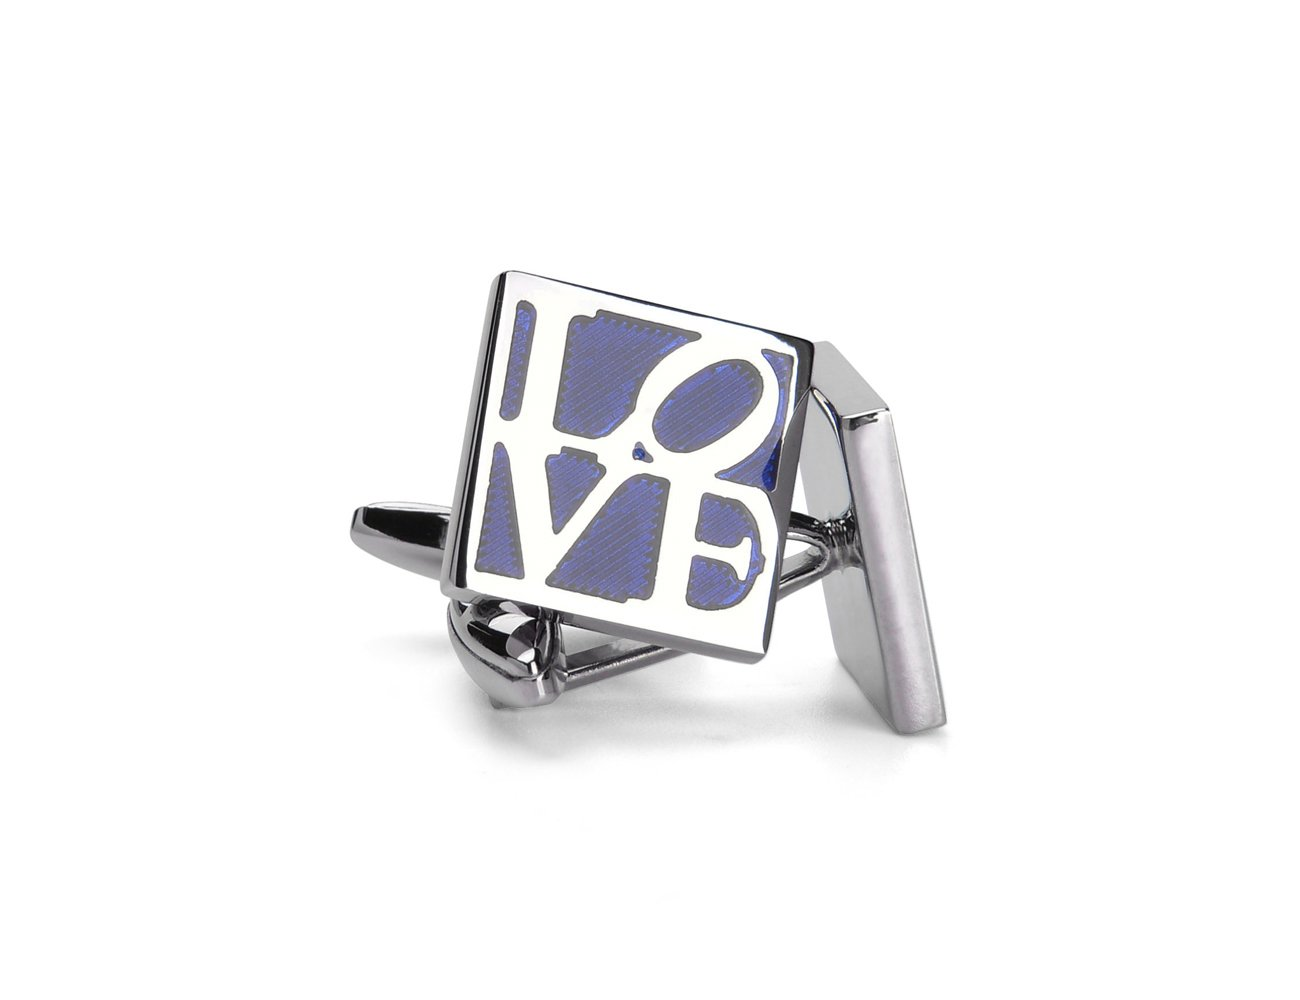 Welbijoux Cufflinks Unique Square Blue LOVE Engraved Cuff Luxury French Shirts Silver Cuff Link for Men